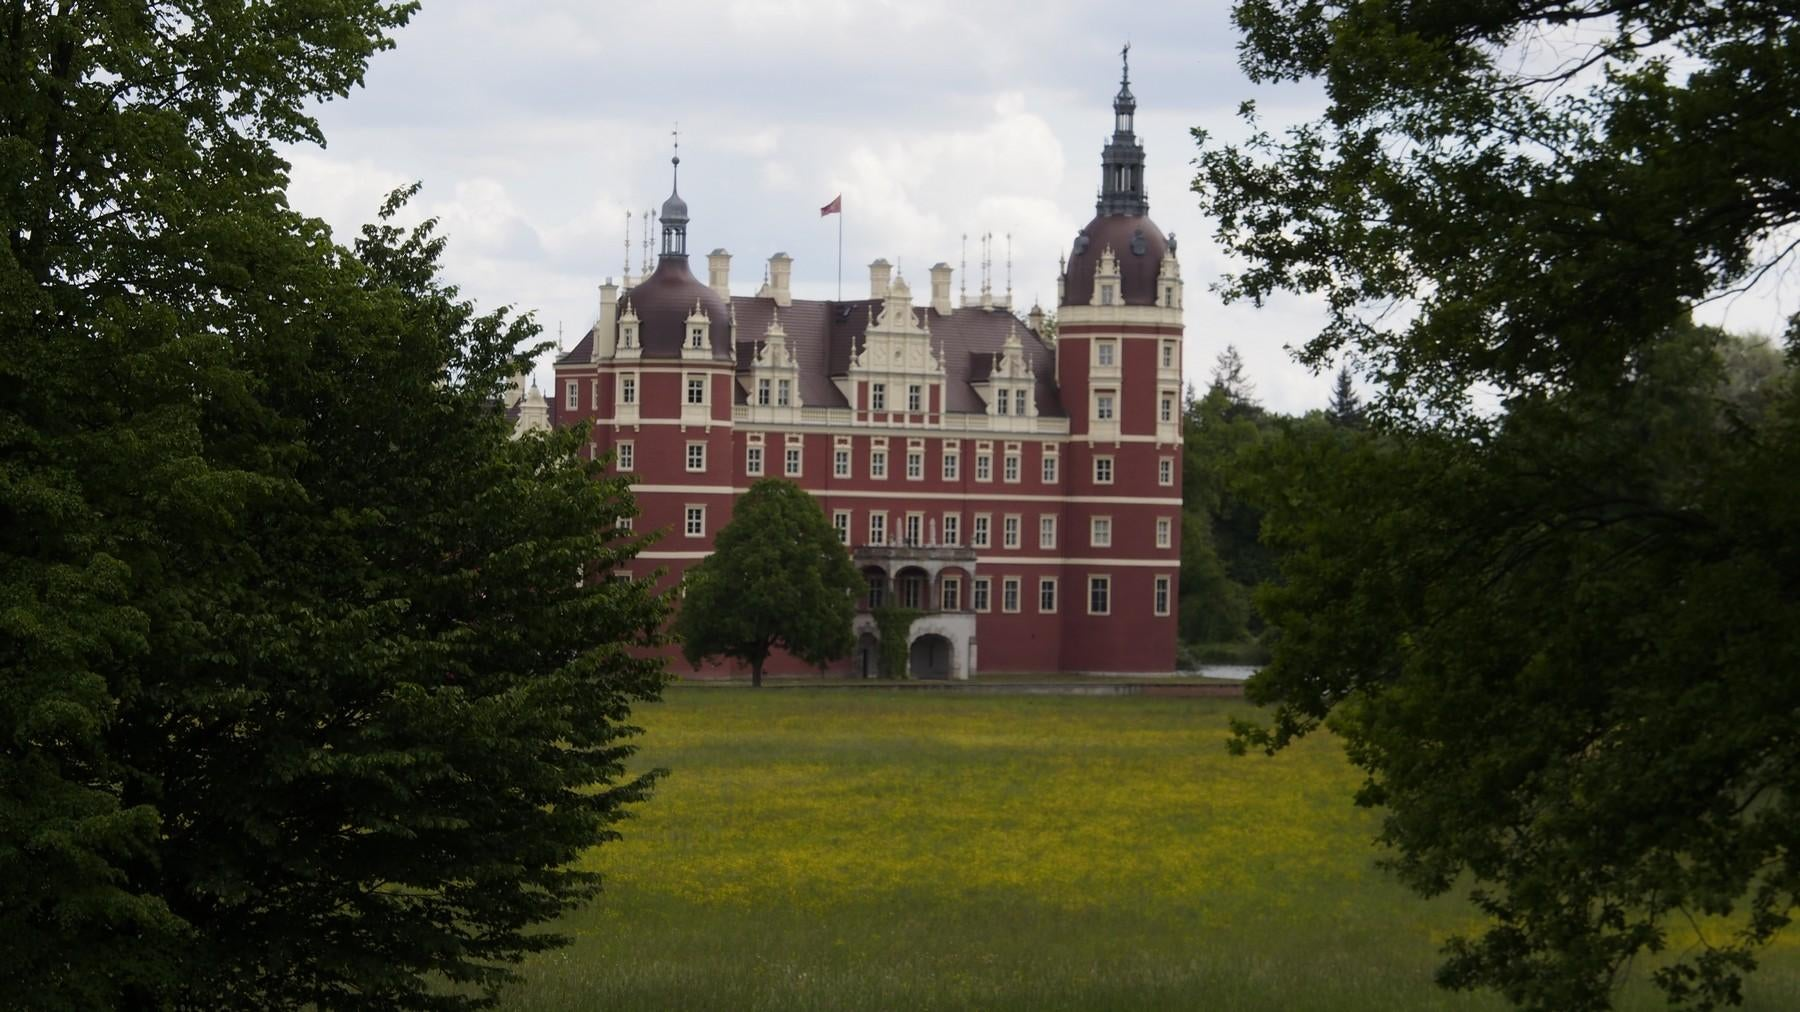 Castillo en Bad Muskau